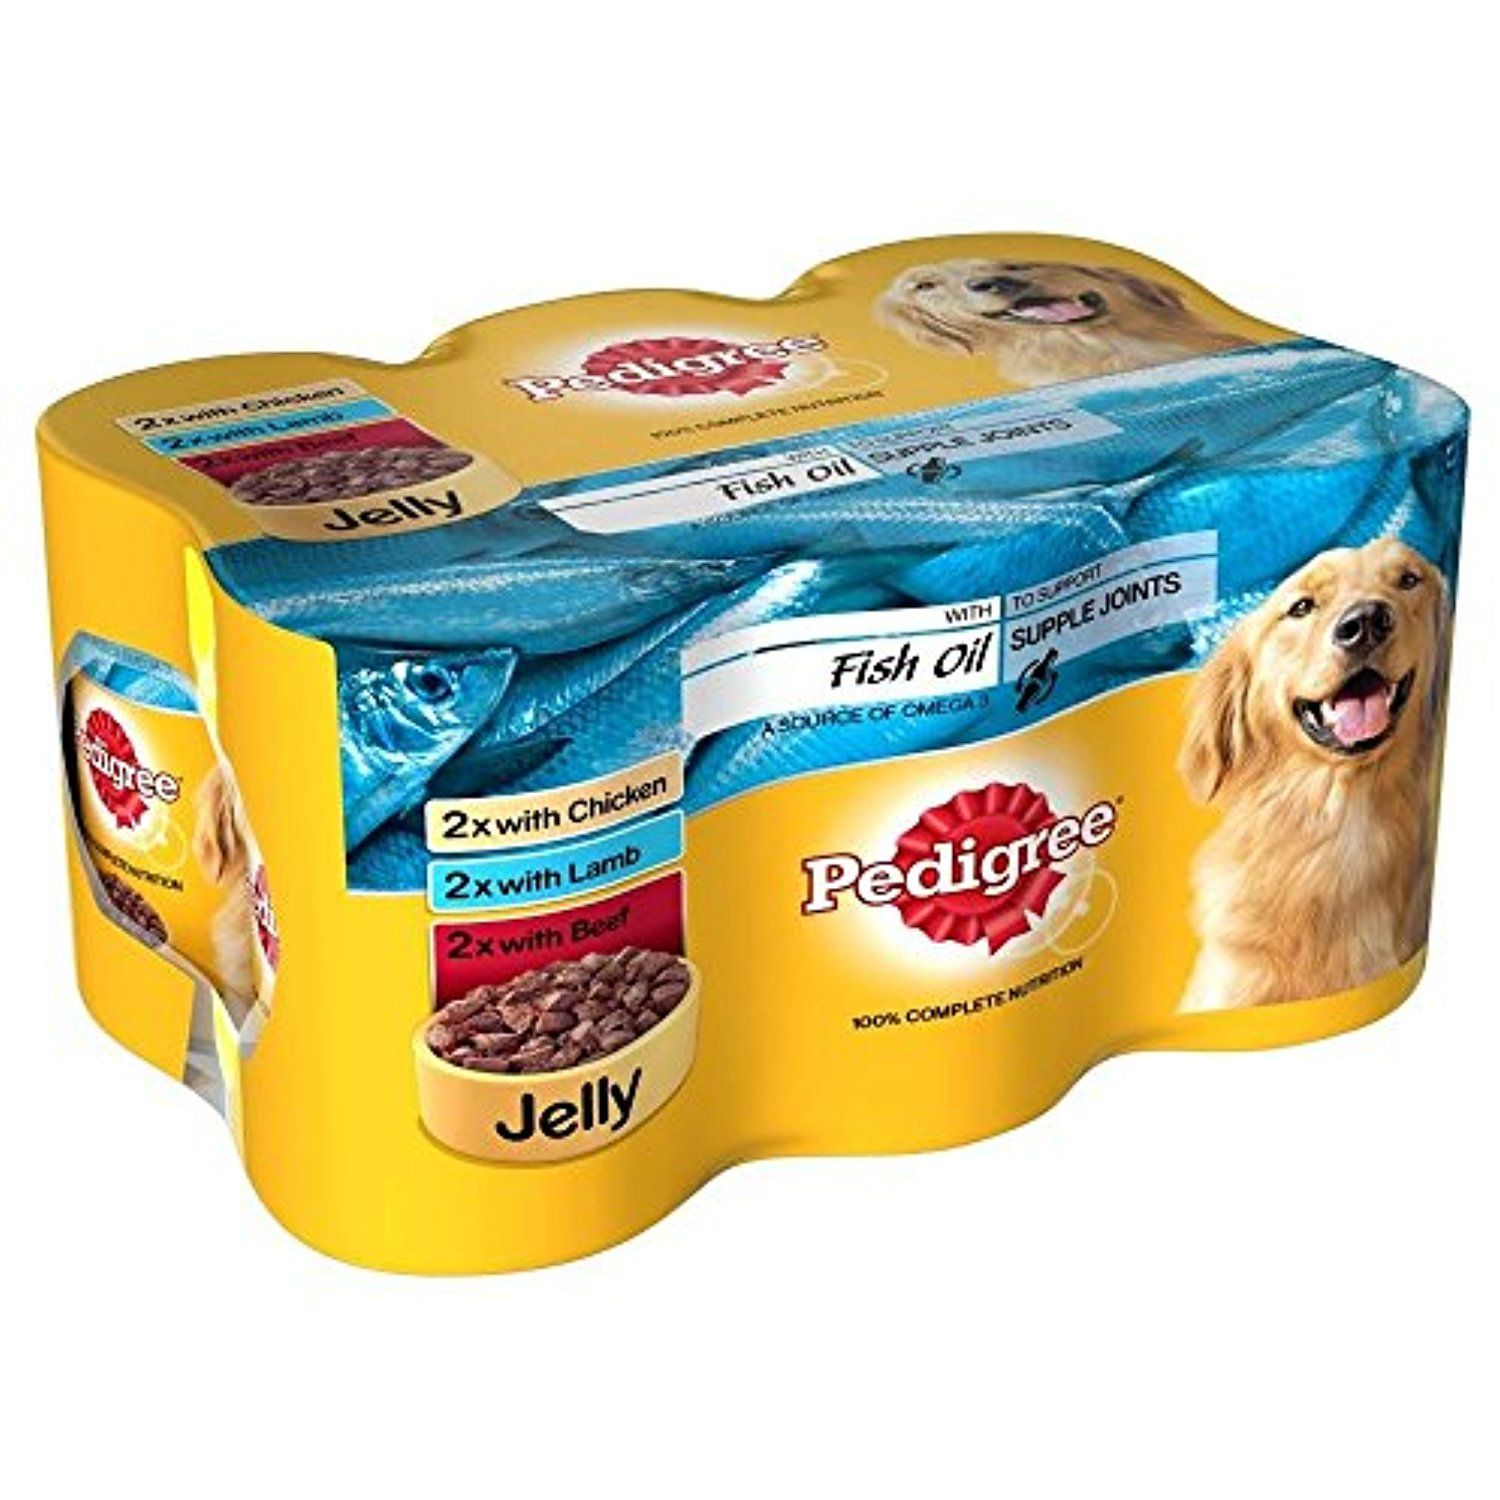 Pedigree chicken lamb beef with fish oil in jelly